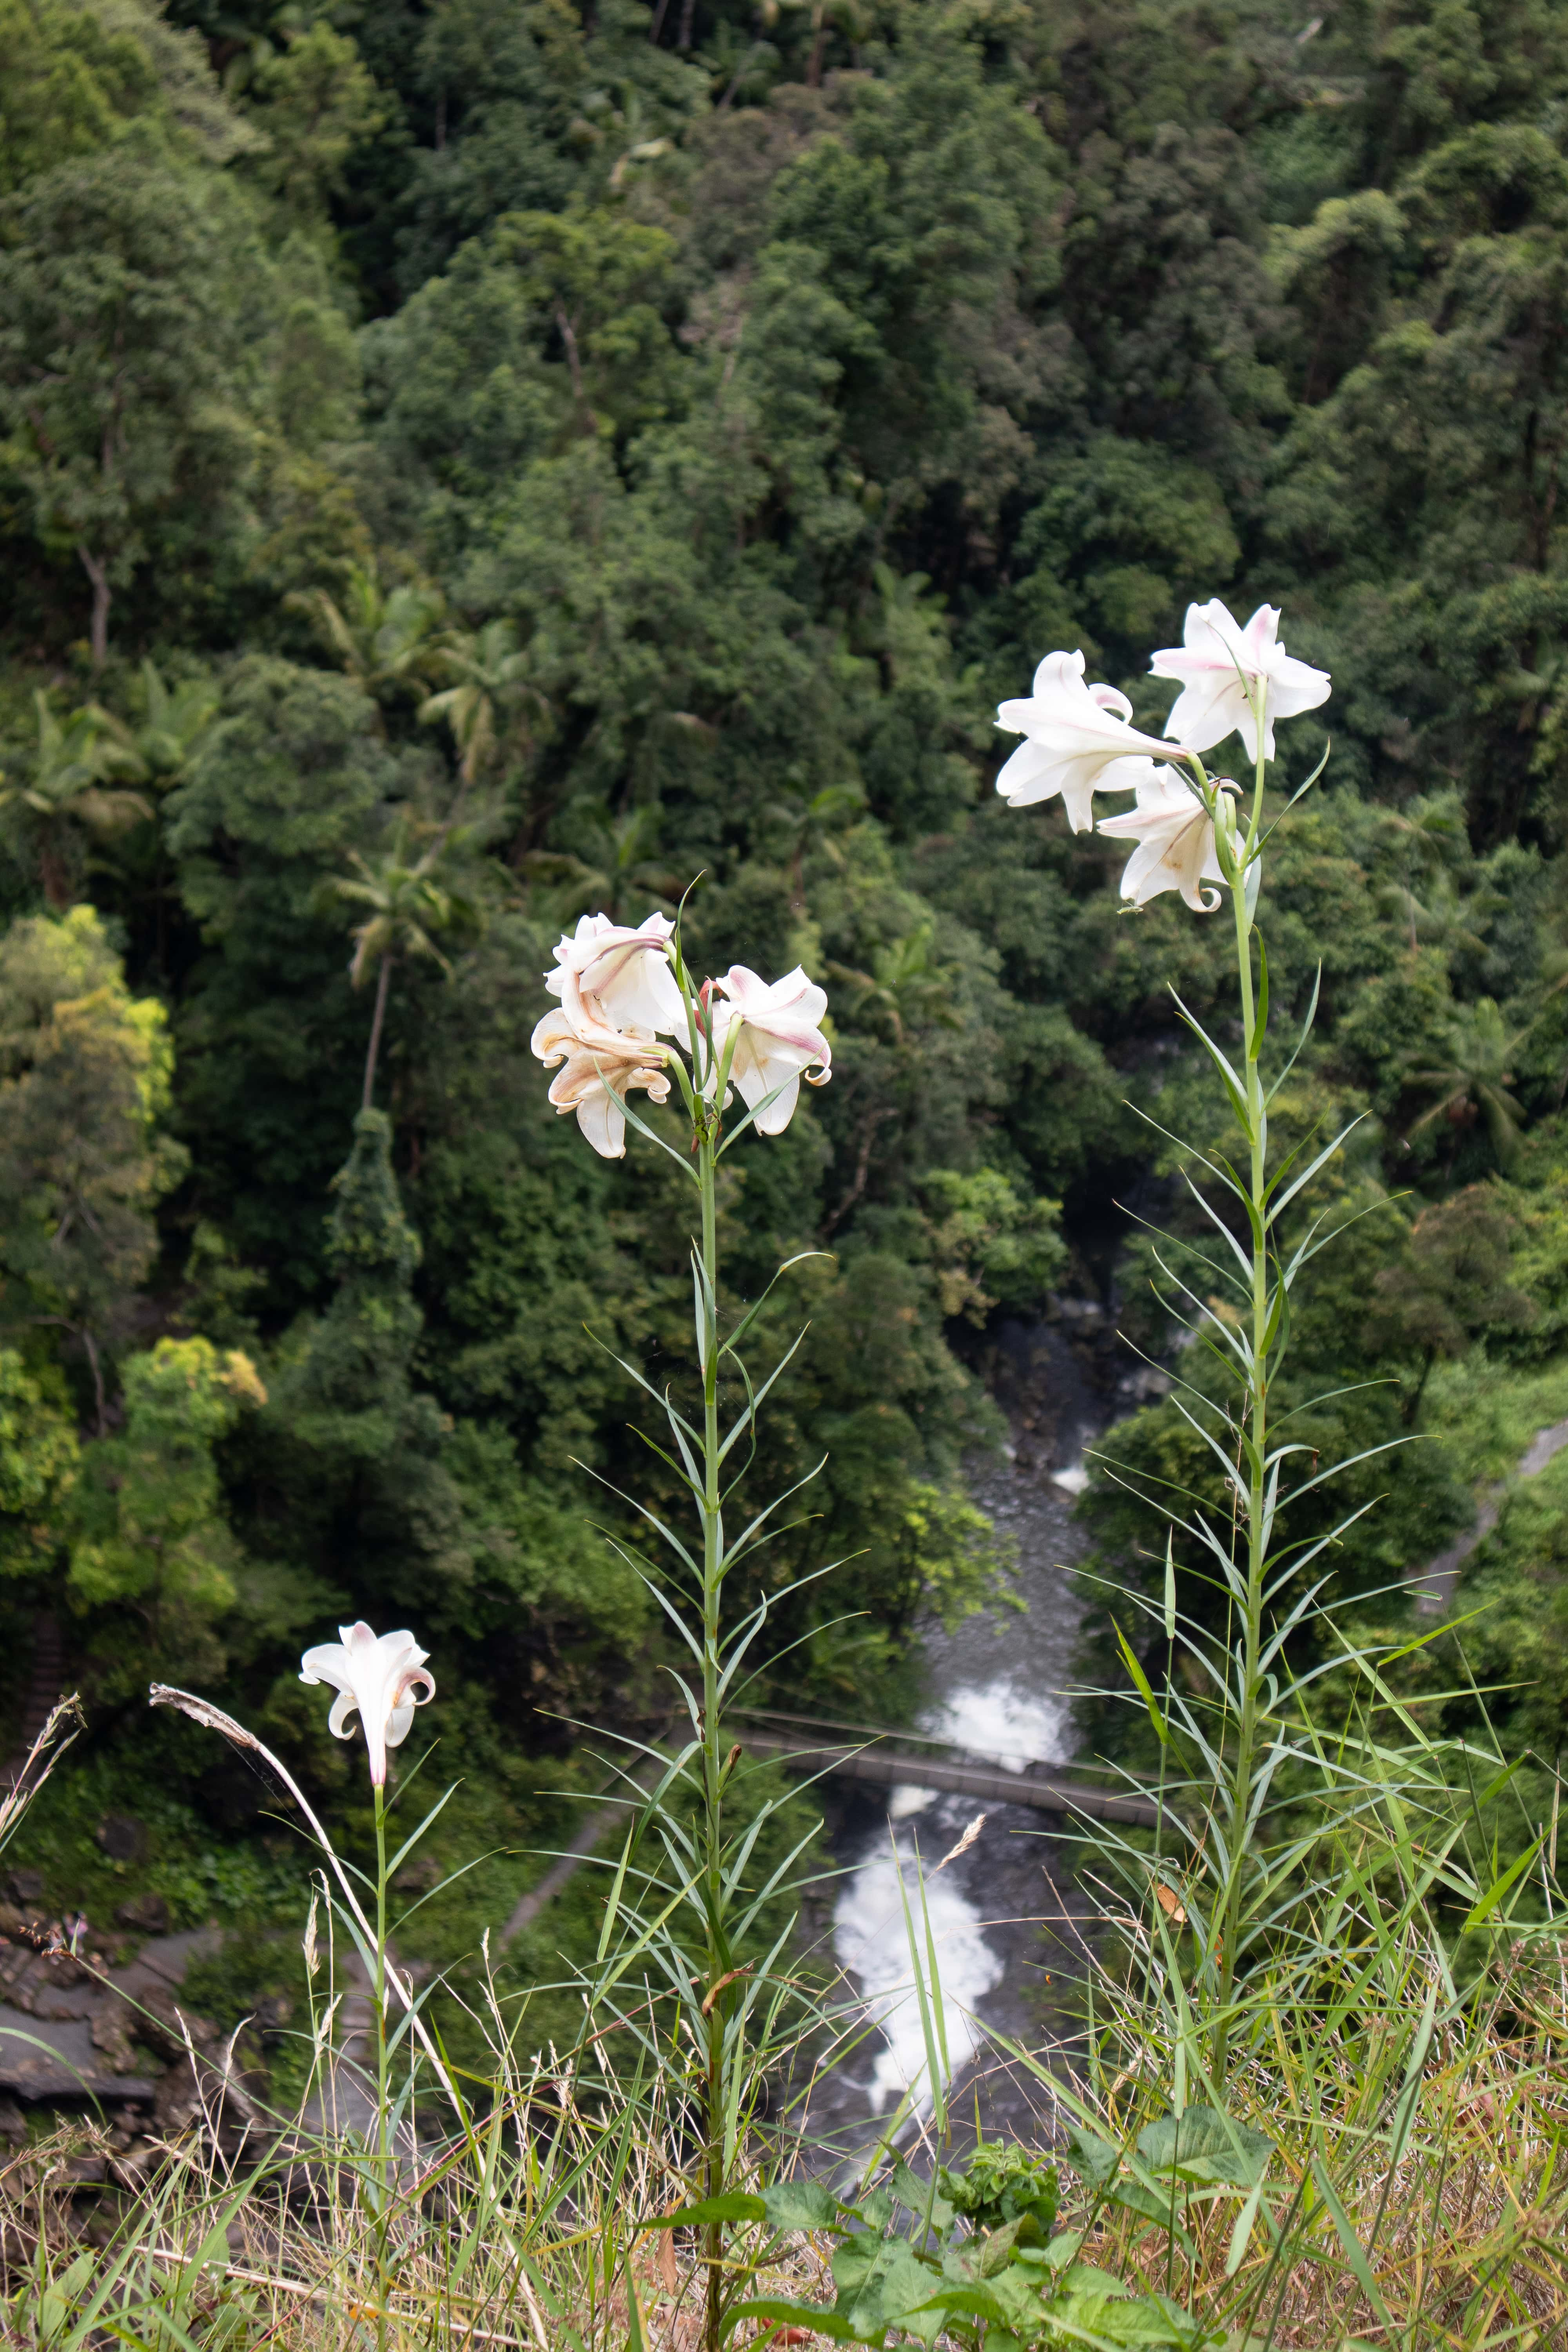 White flowers growing on the edge of a cliff with a river in the background below